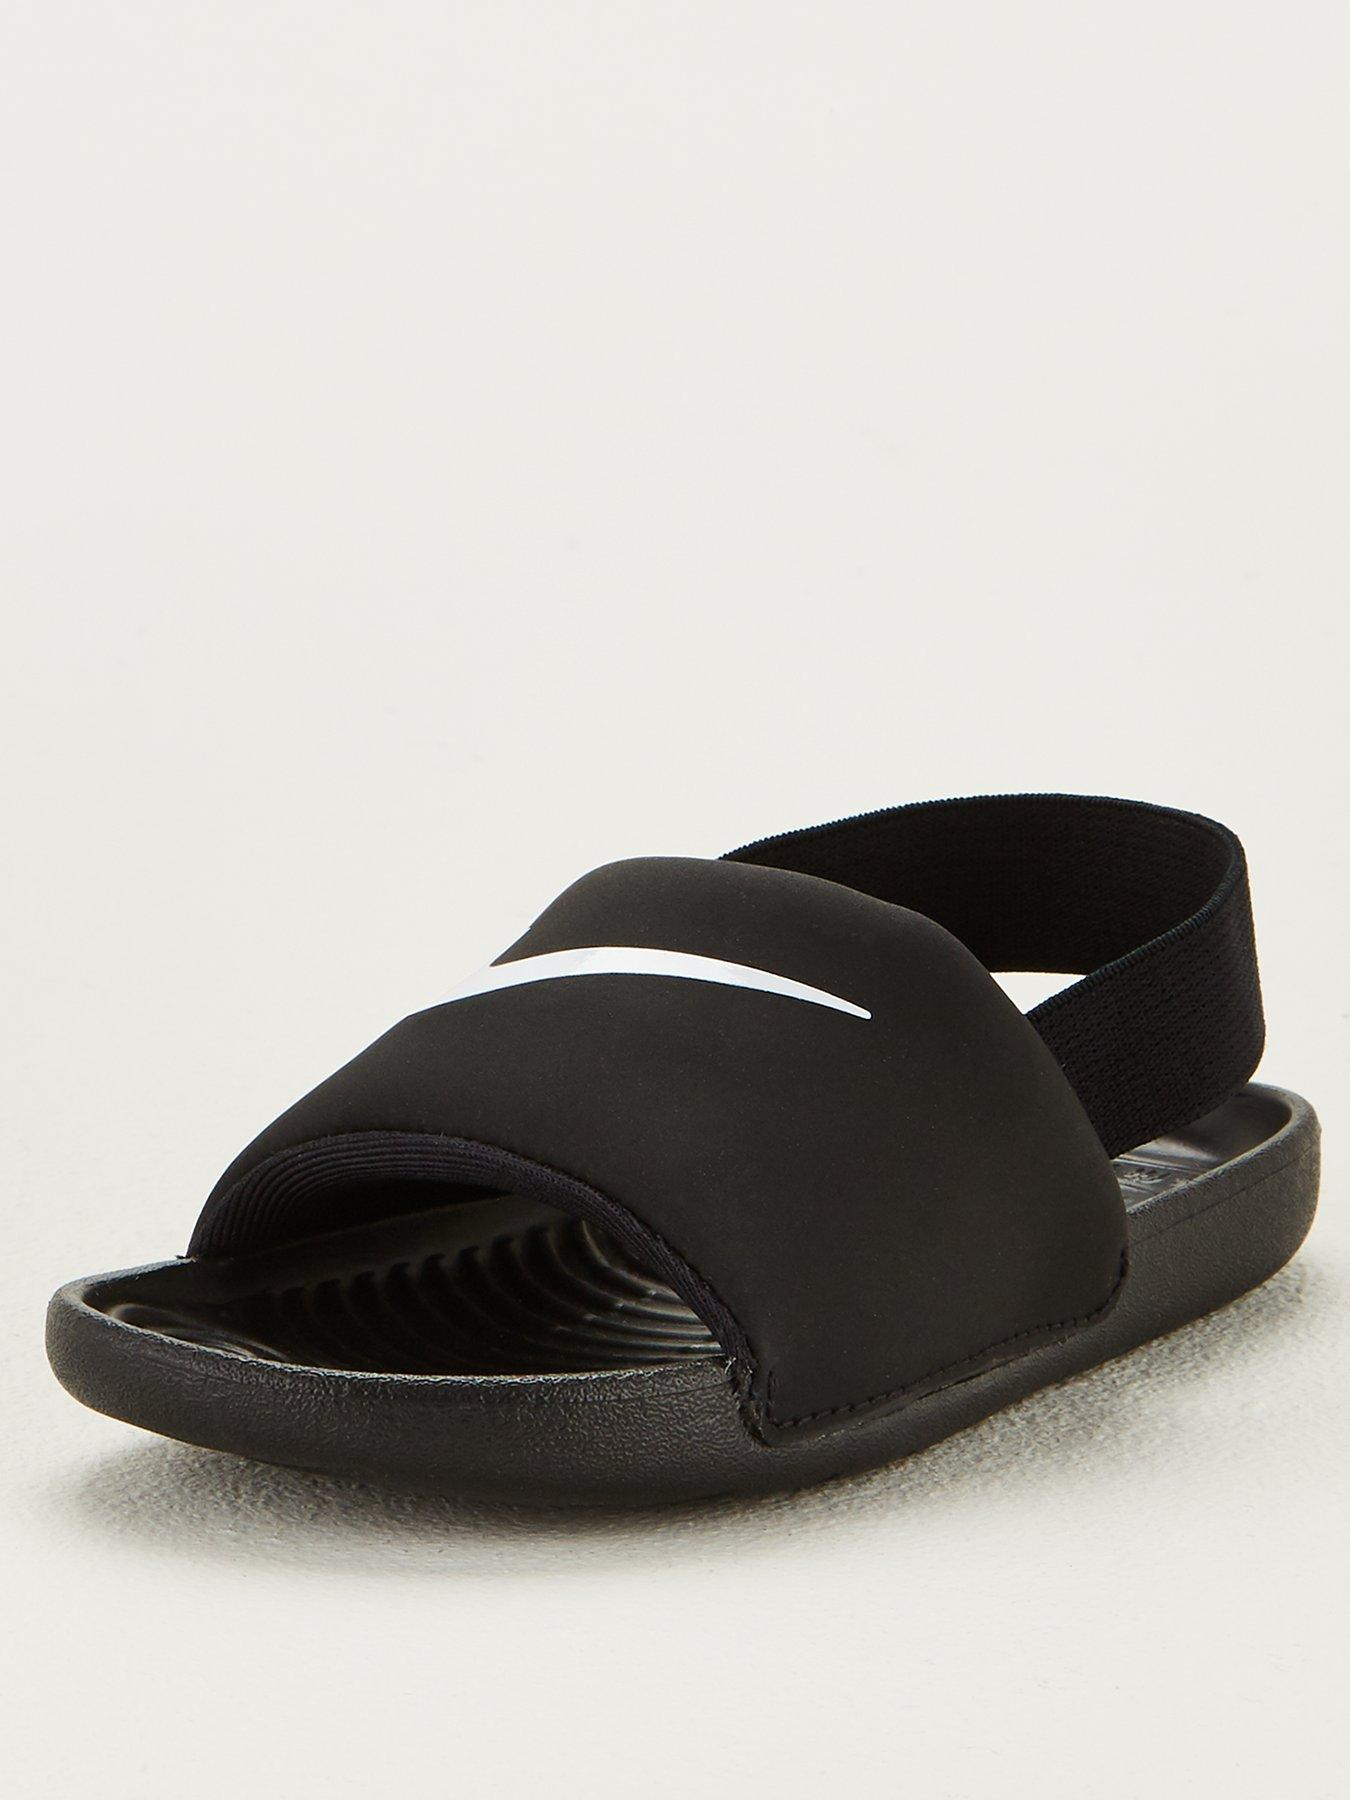 Sandals   Childrens Sandals   Very.co.uk